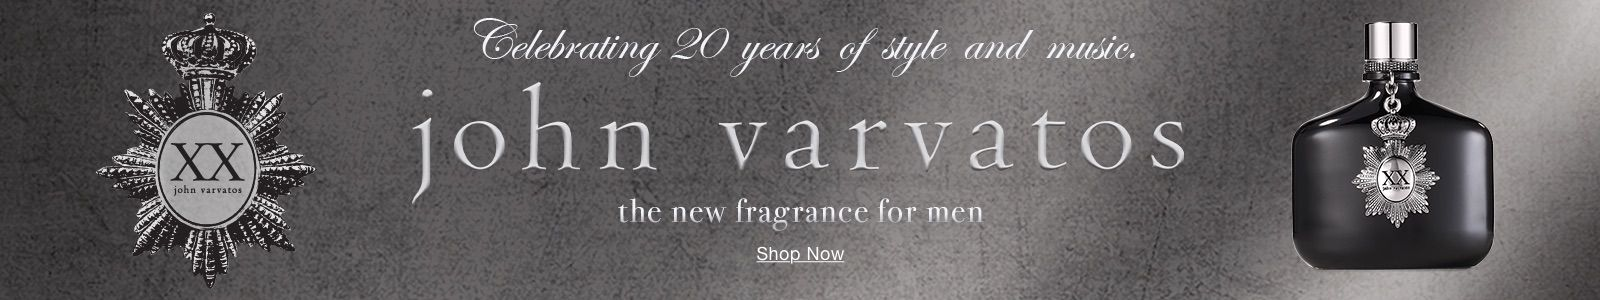 Celebrating 20 years of style and music, john varvatos, the new fragrance for men, Shop Now